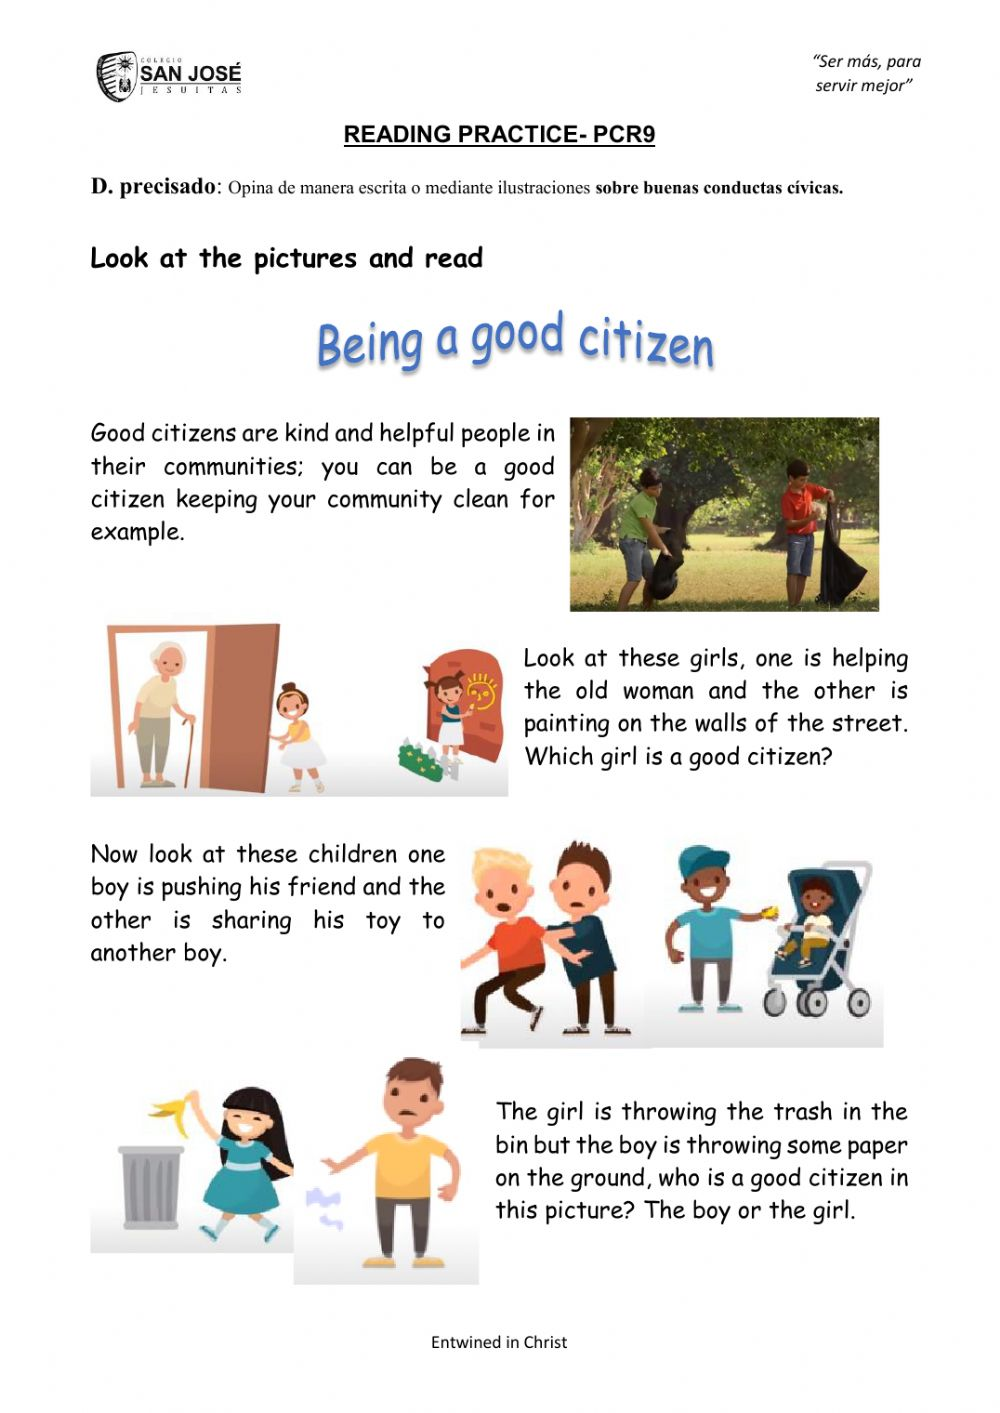 medium resolution of Being a good citizen exercise